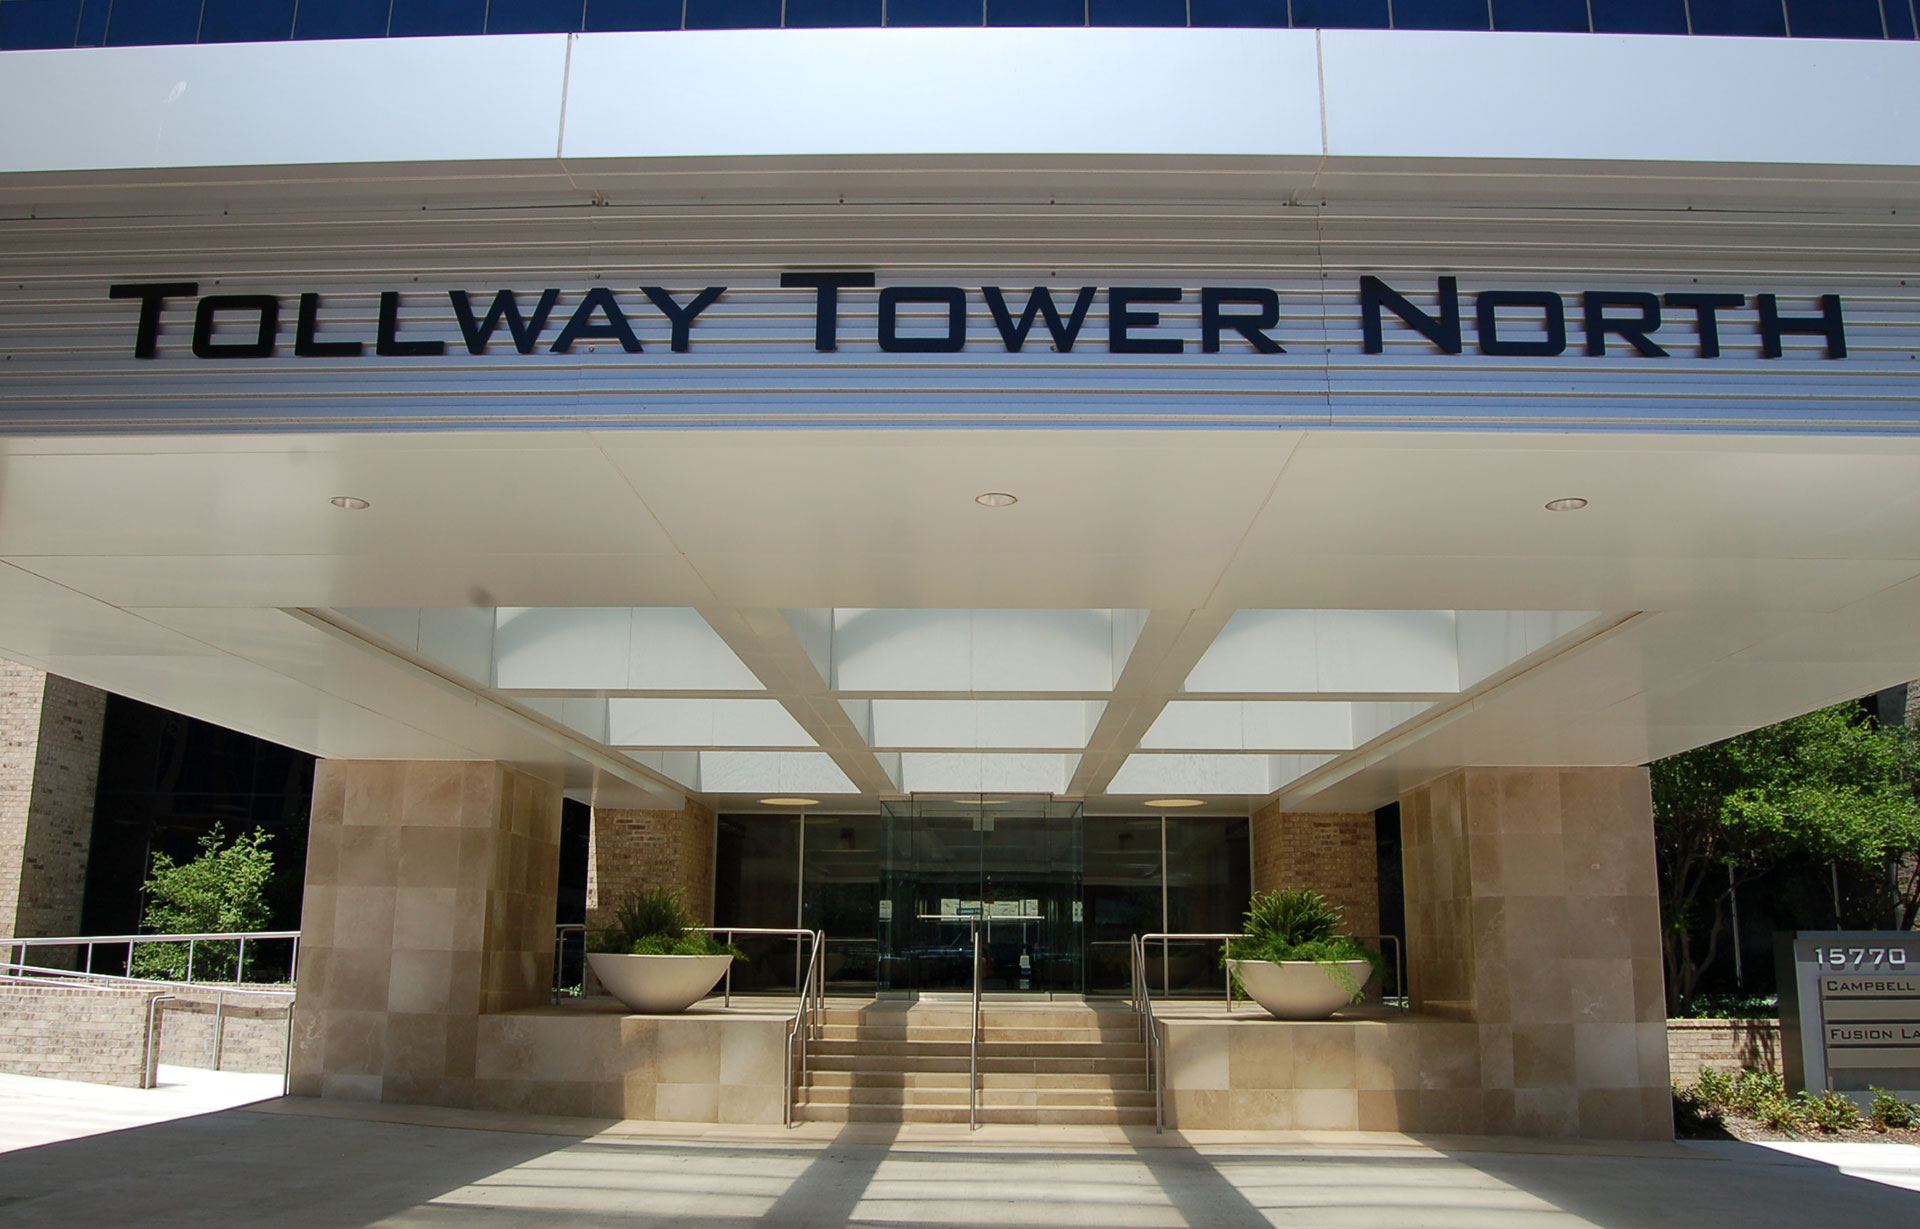 Tollway Tower North